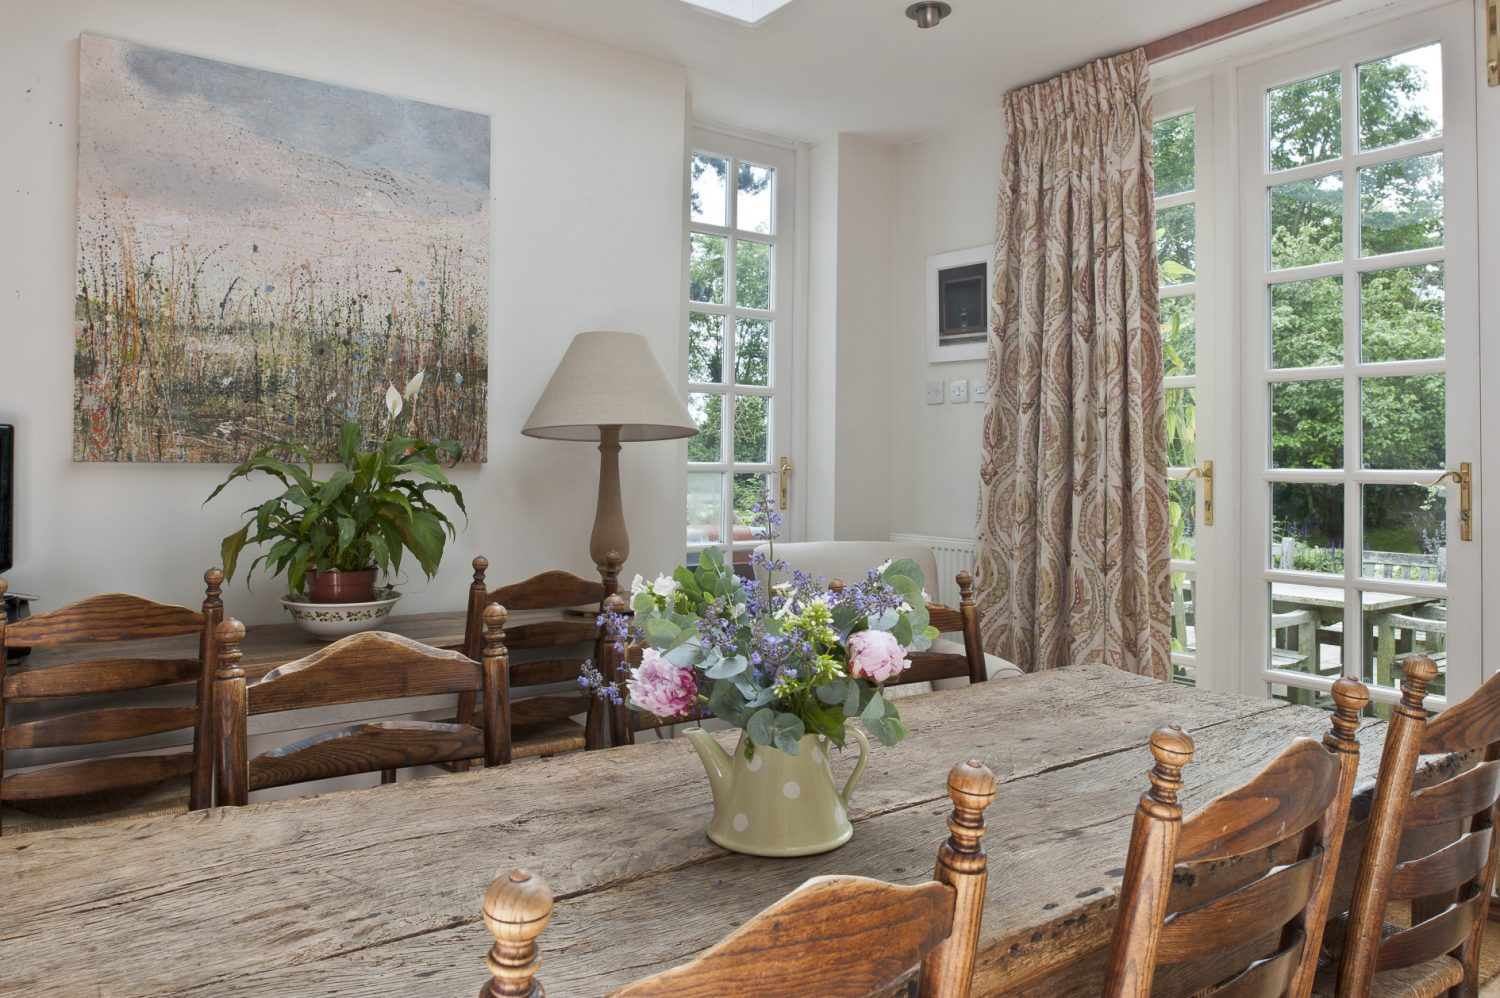 The previous owners extended the kitchen with a light-filled eating area.